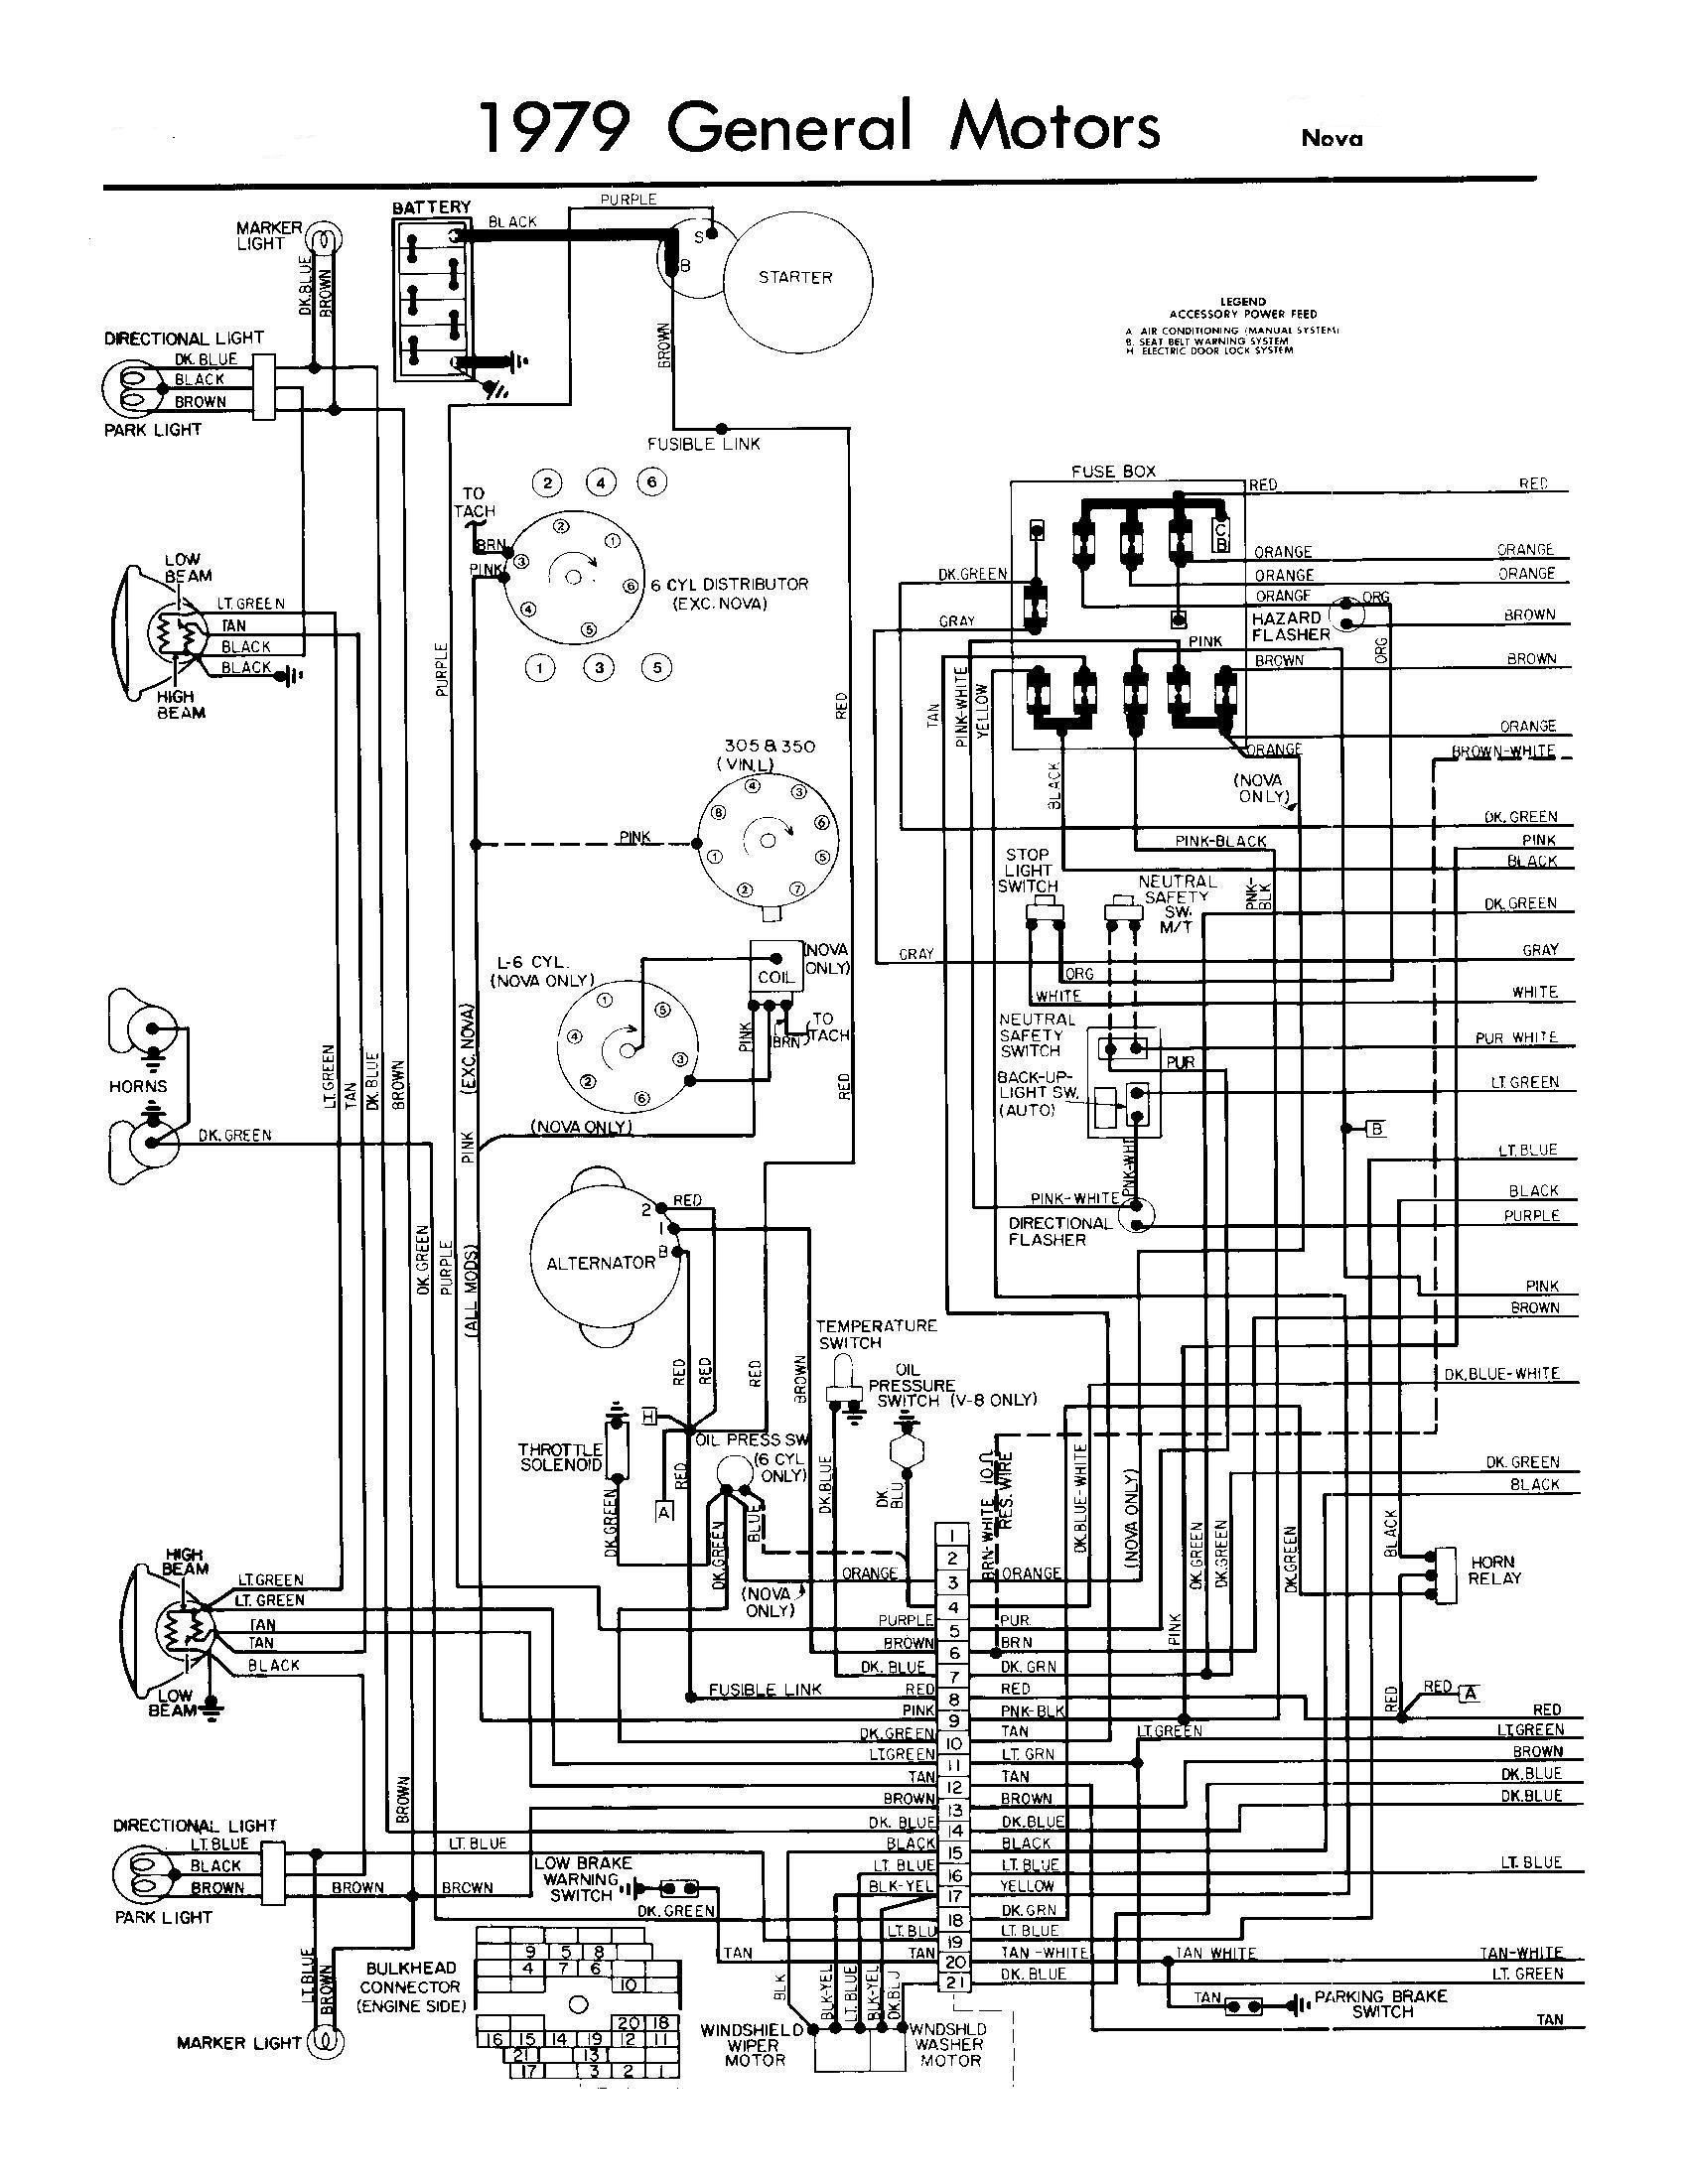 all generation wiring schematics chevy nova forum custom 79' gmc gm wiring schematic symbols all generation wiring schematics chevy nova forum